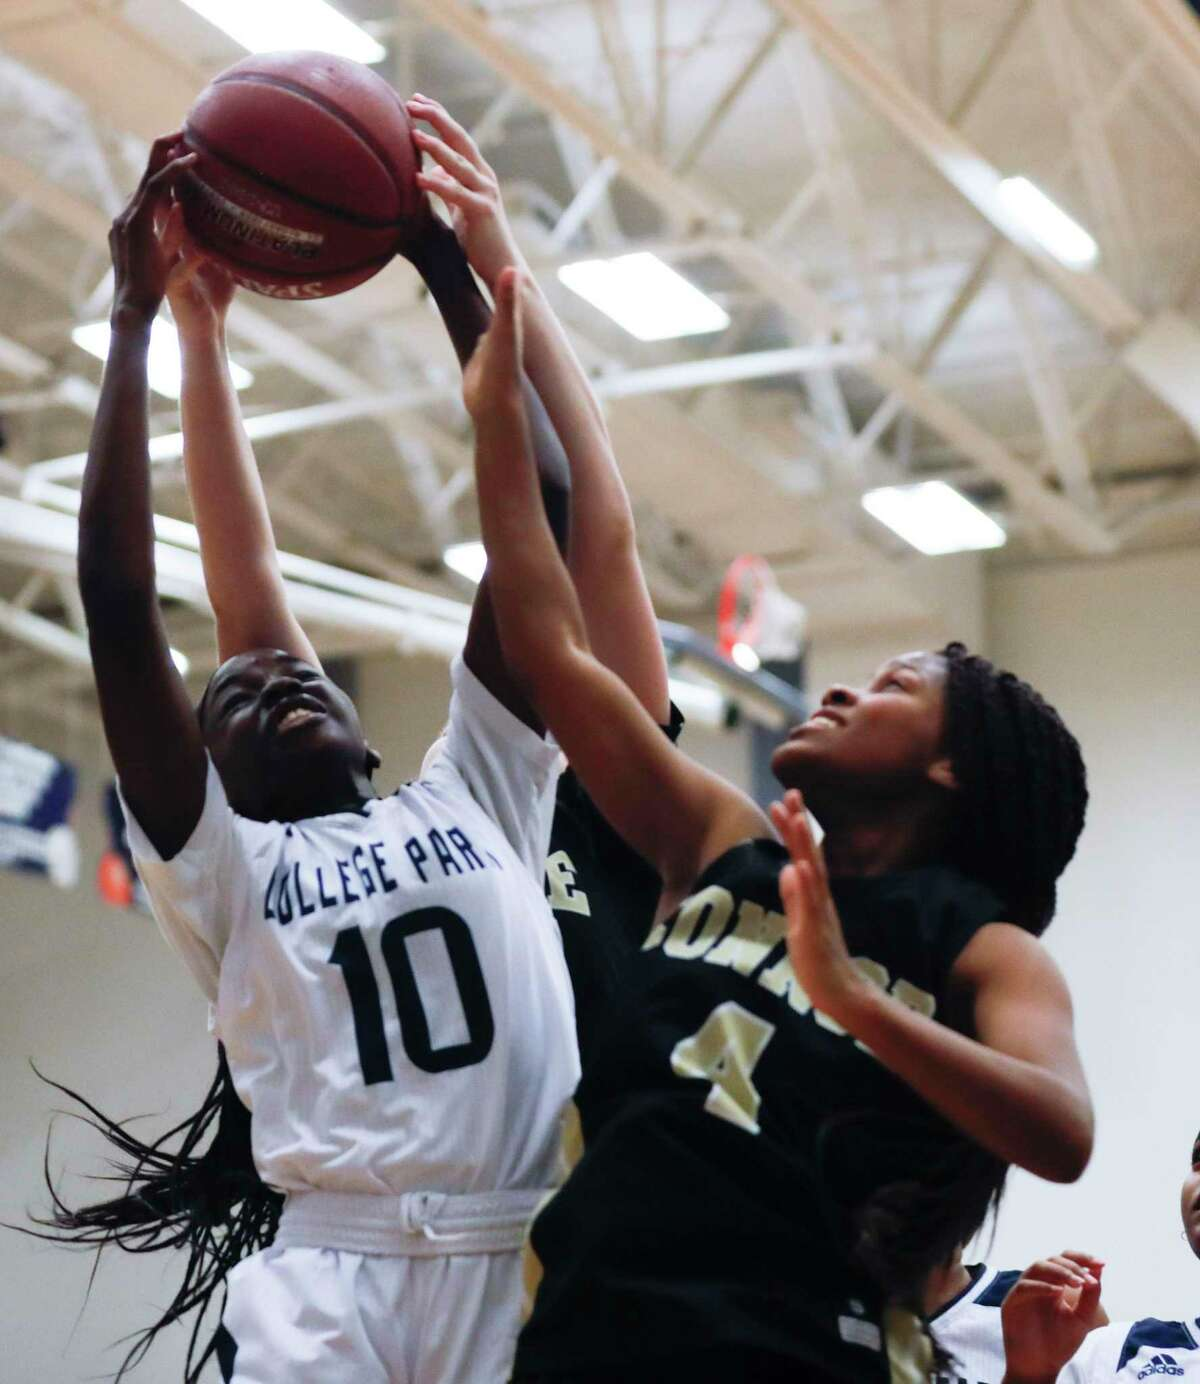 College Park power forward Ali Diop (10) was named the District 15-6A Newcomer of the Year.